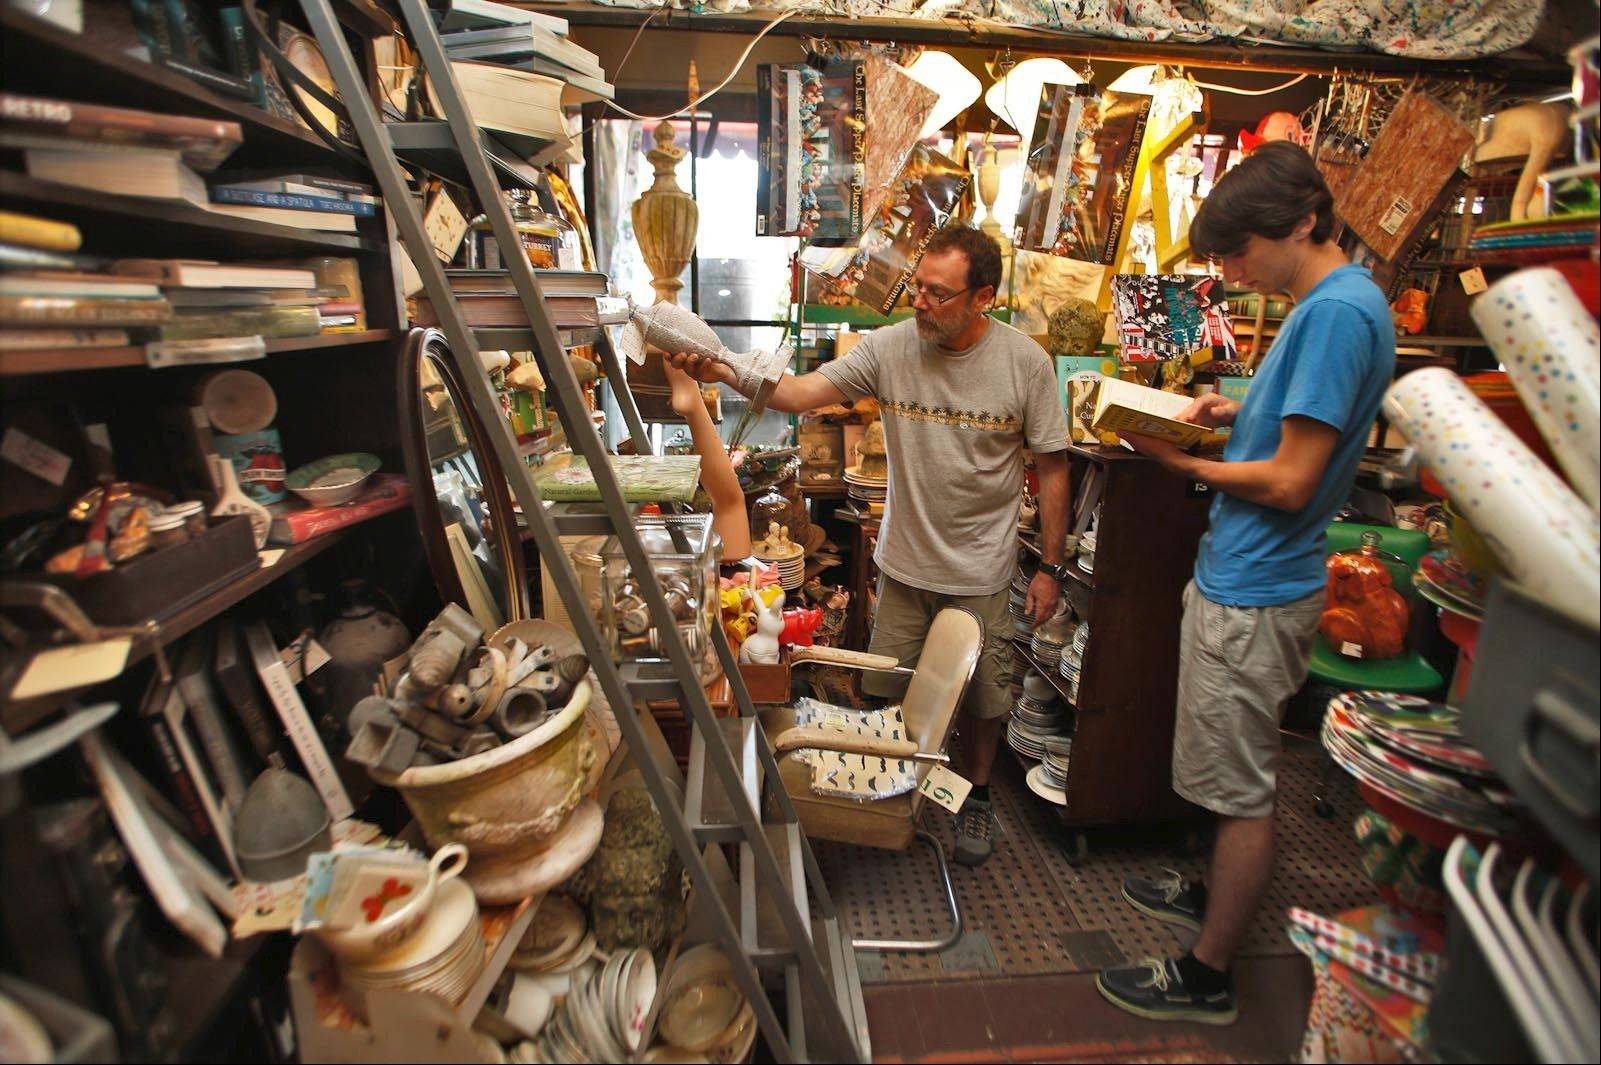 Norbert Schiller and his son, Tamer Schiller, look for items for Tamer to display in his dorm room.